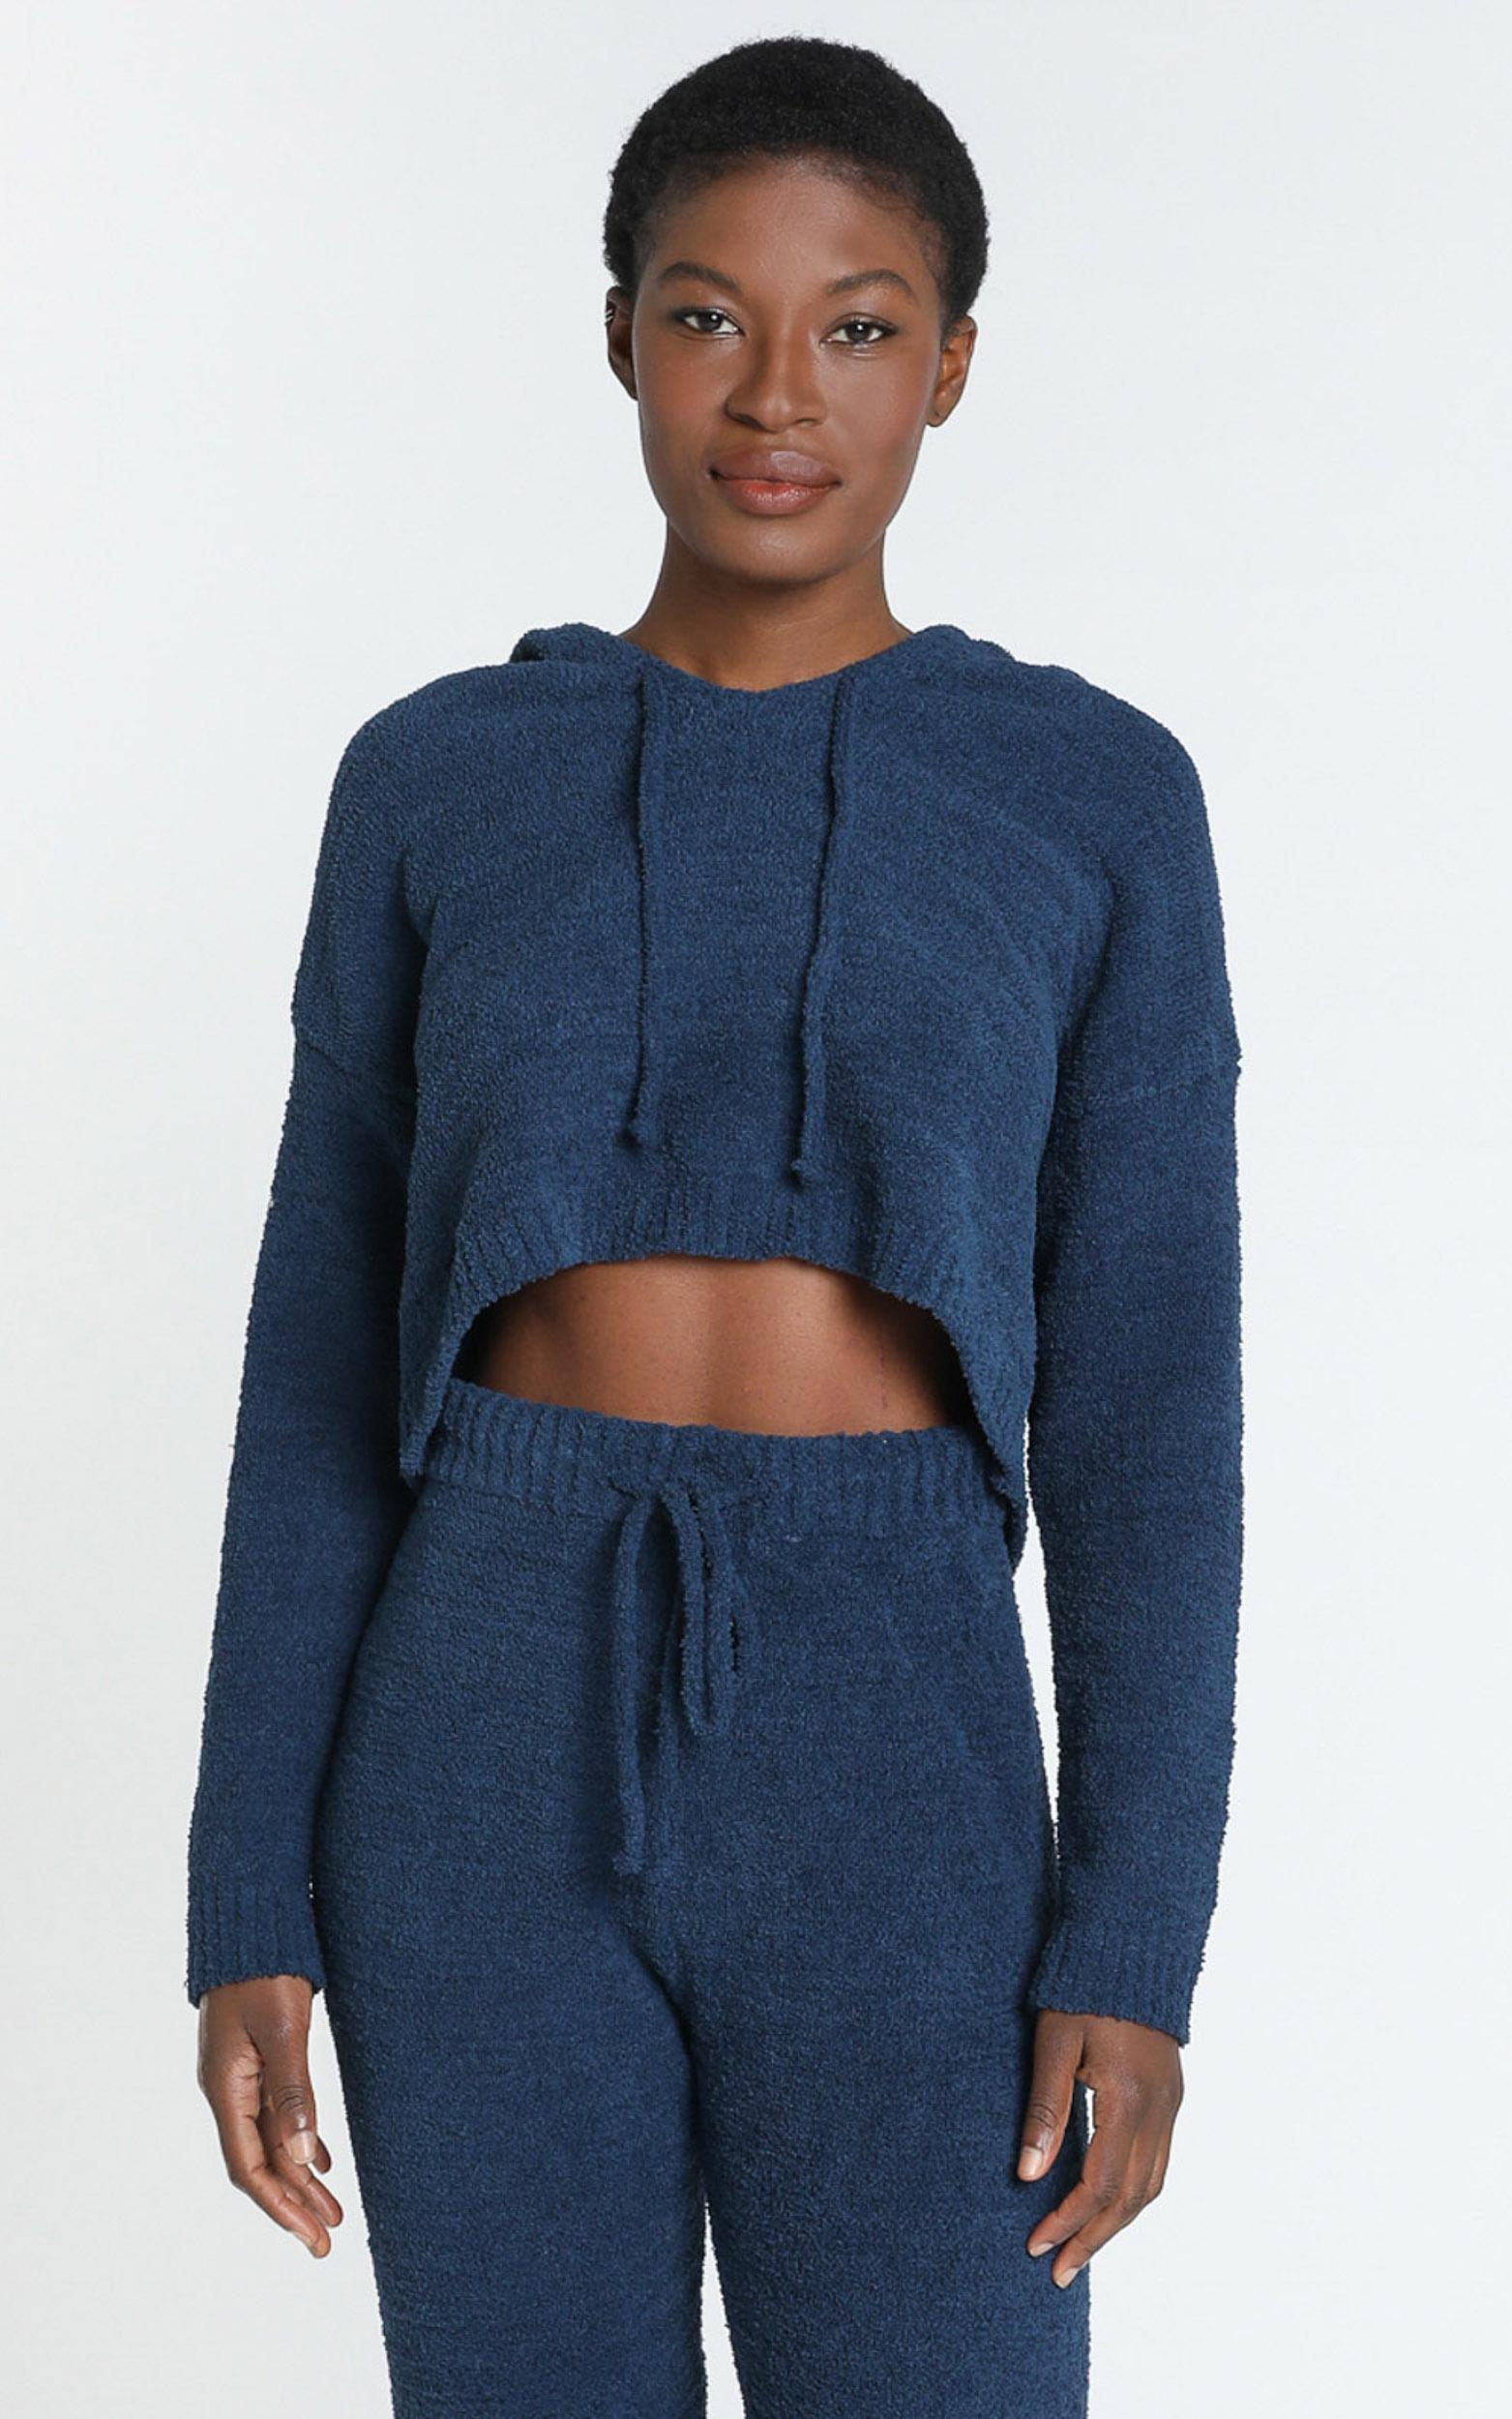 Adelie Super Soft Knit Hoody in Navy - S, Navy, hi-res image number null